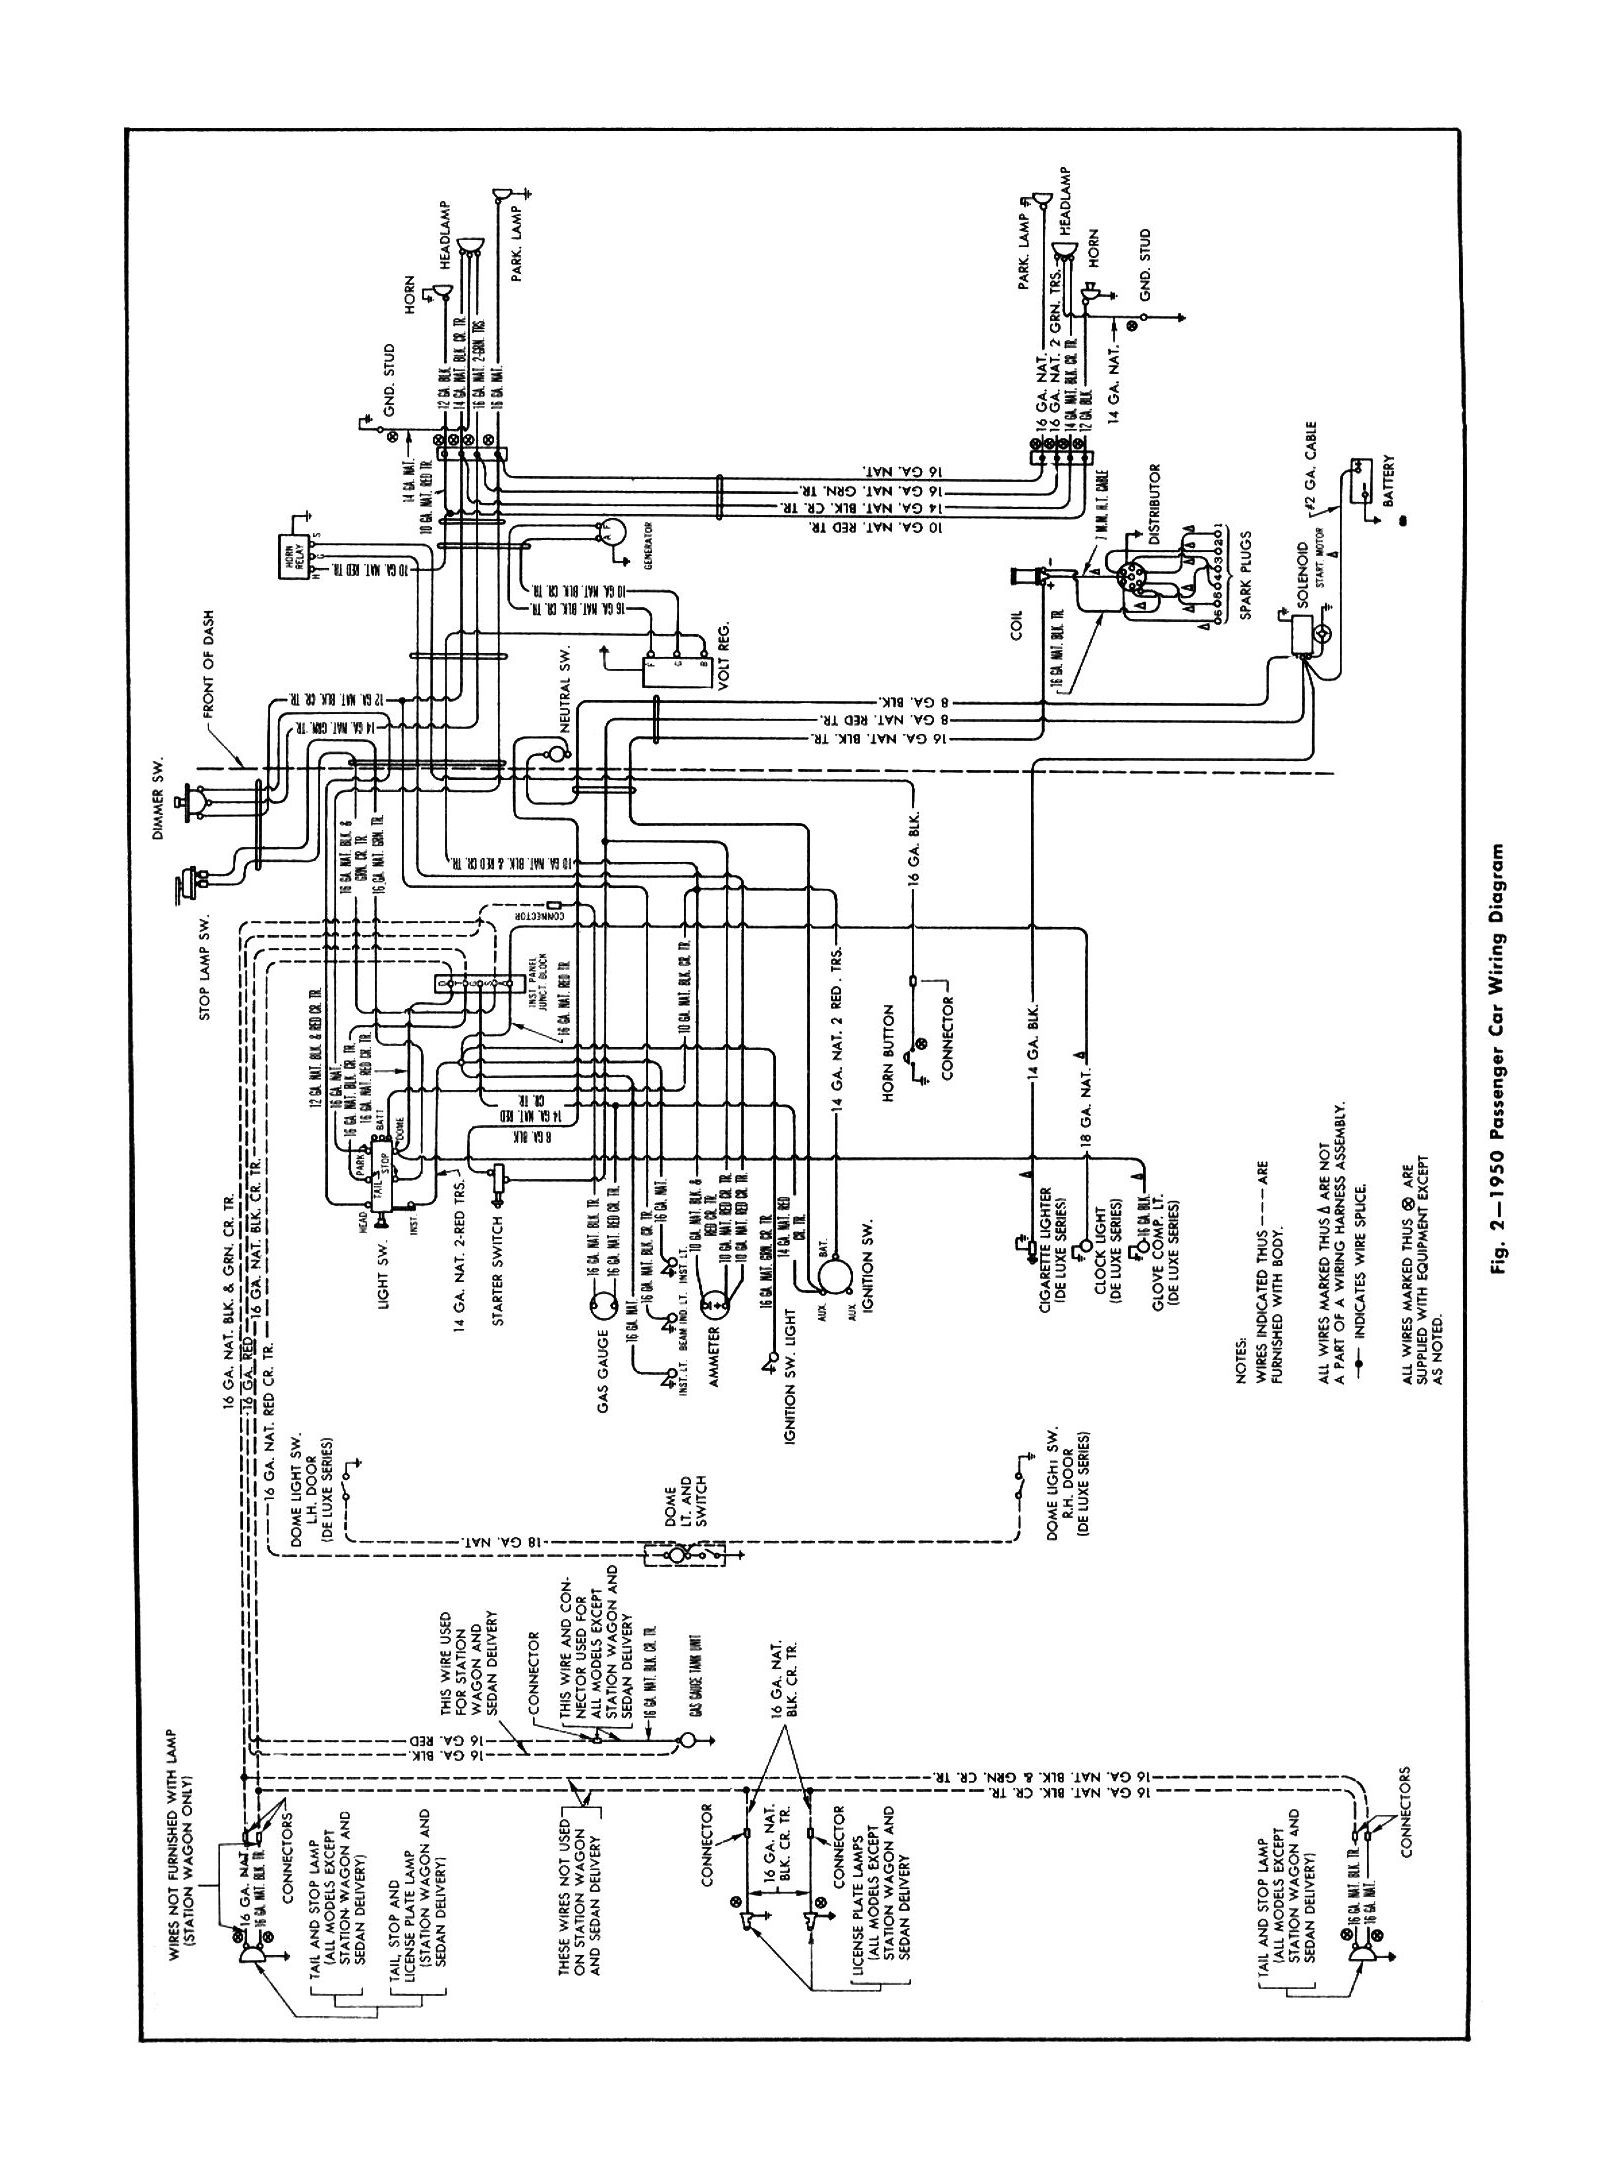 hight resolution of case ih 7140 wiring schematic ford f150 headlight assembly diagram awesome 1950 ford wiring schematic